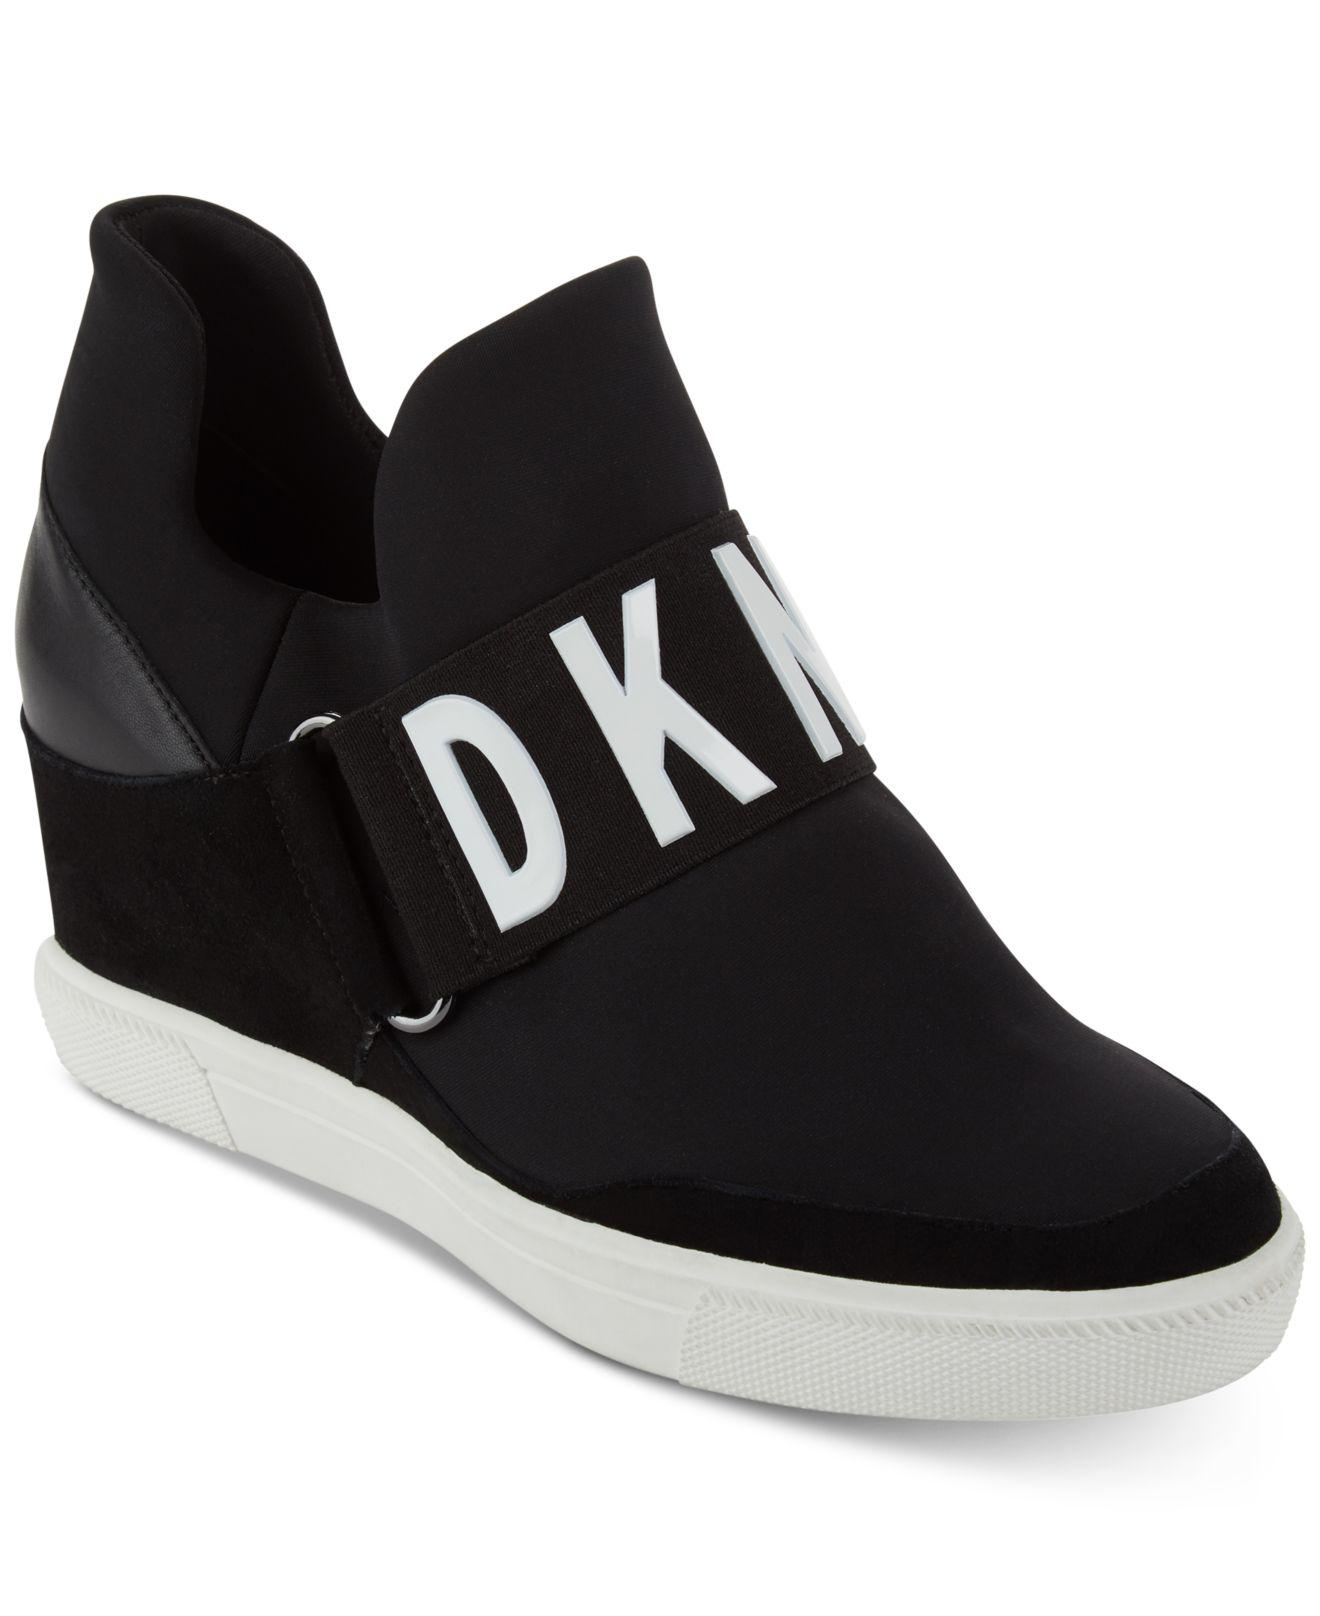 b507ccc69008 Lyst - DKNY Cosmos Platform Sneakers